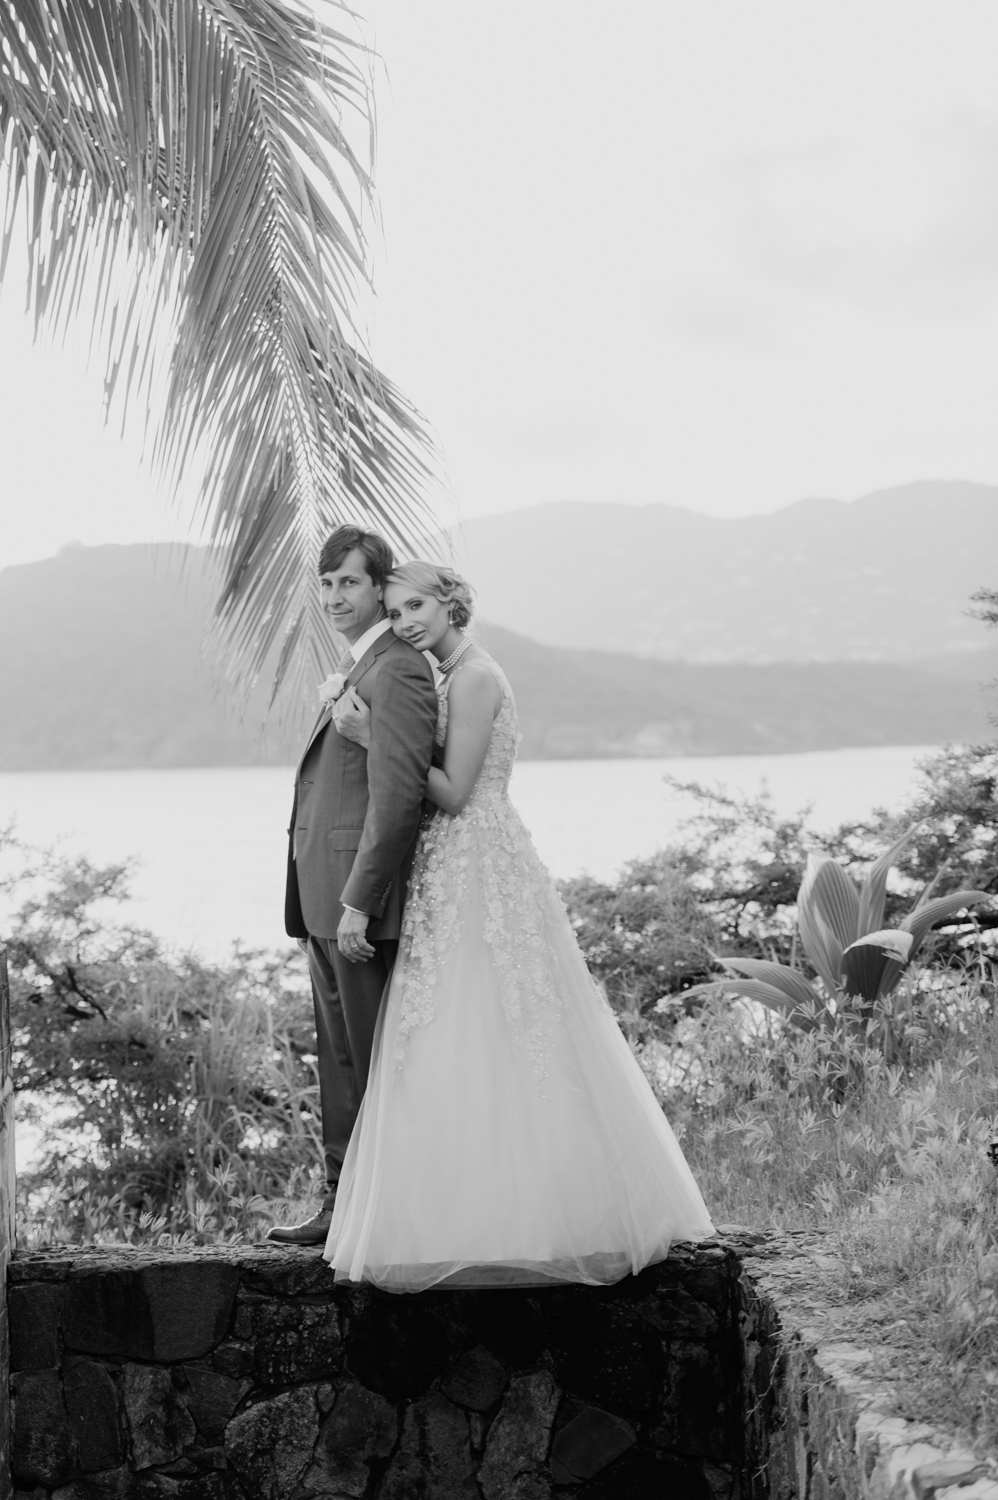 St.Thomas.FrenchmansReef.Wedding.Leme60.jpg